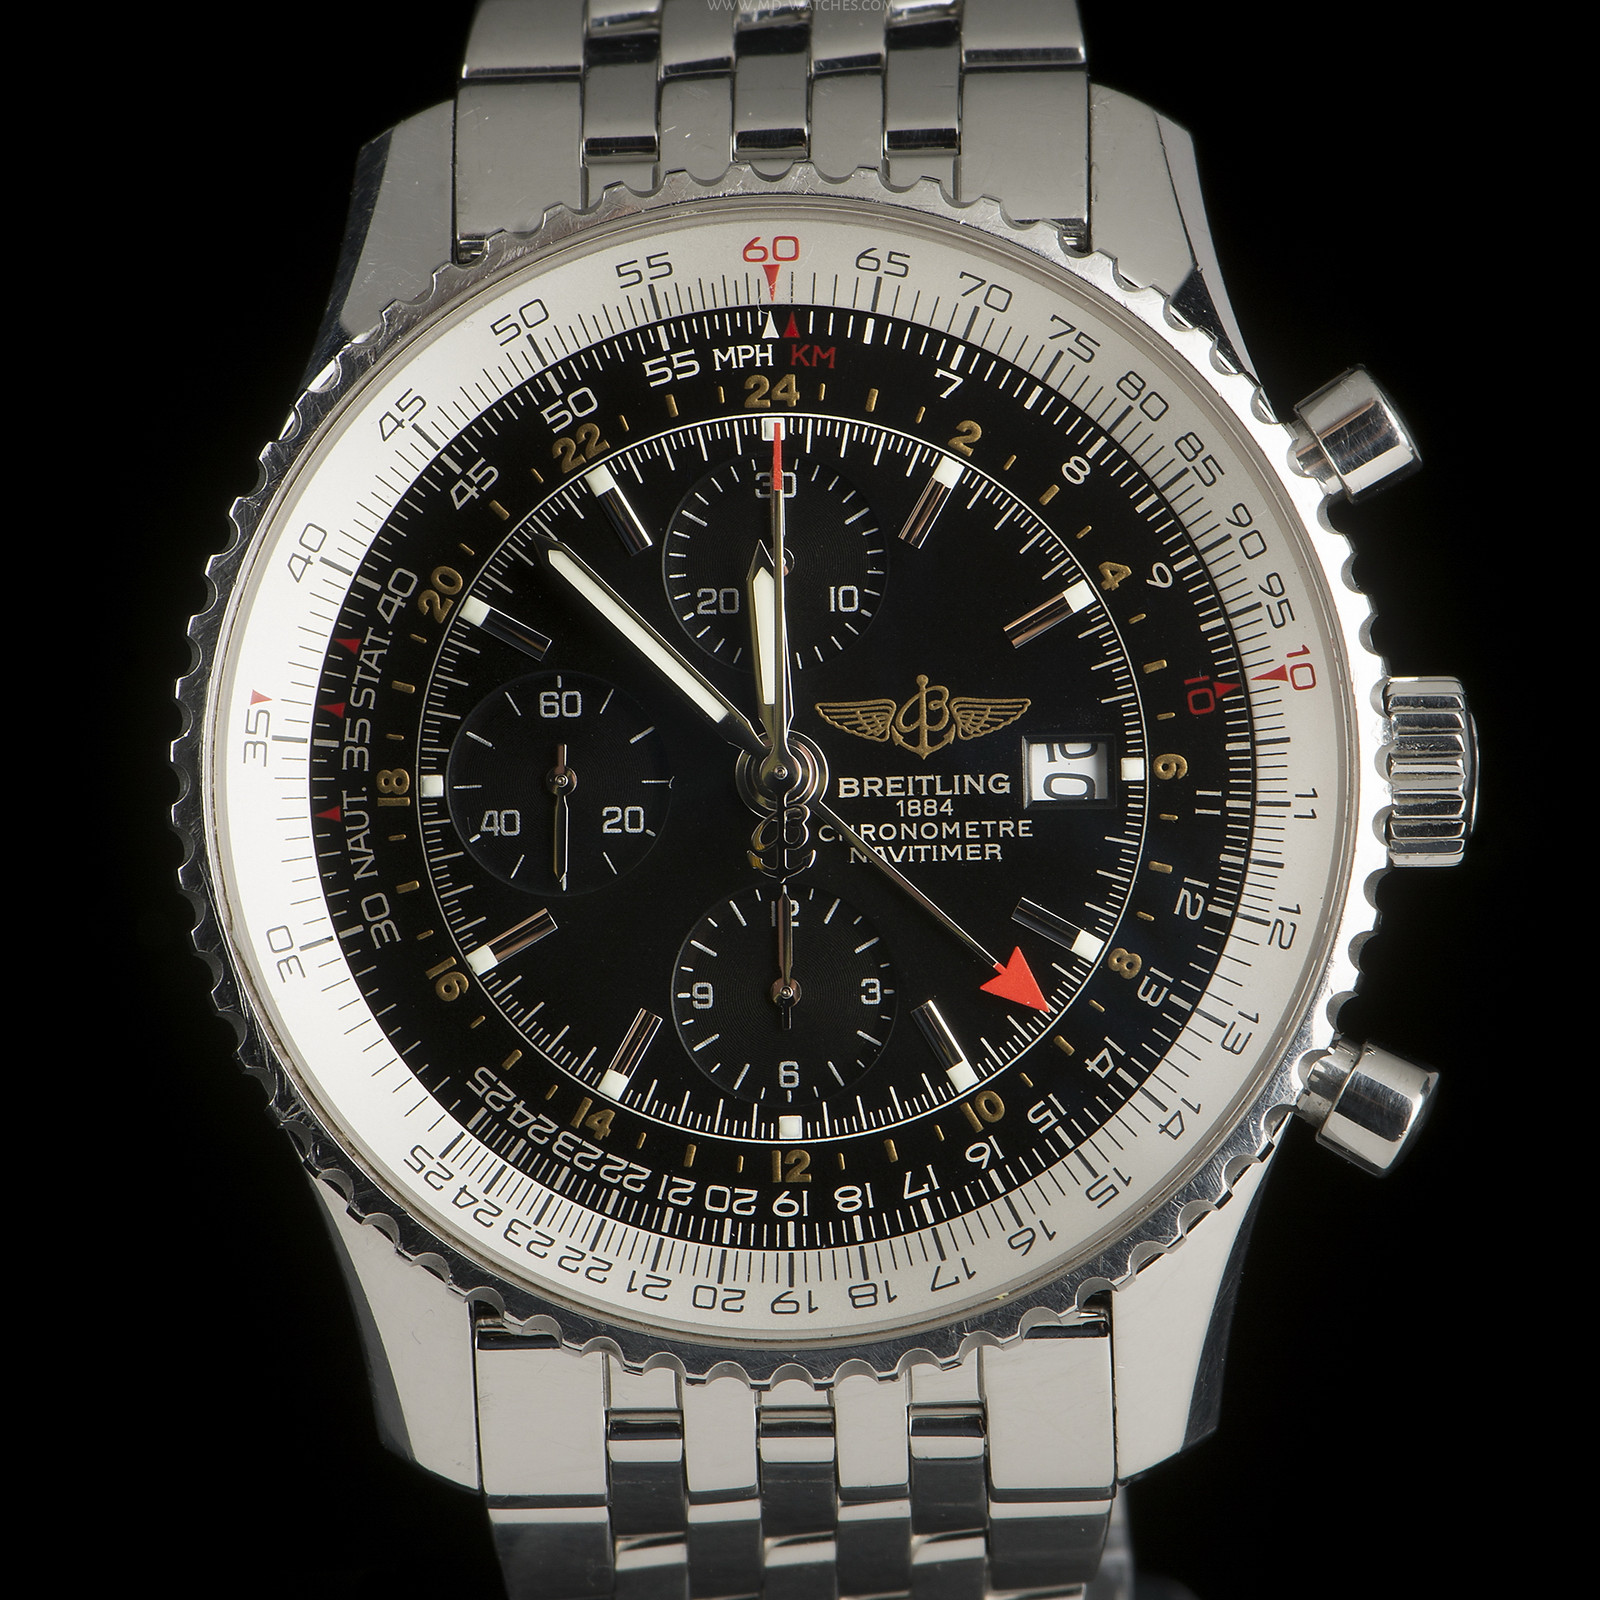 Breitling Navitimer World Chronograph Ref A24322 46mm